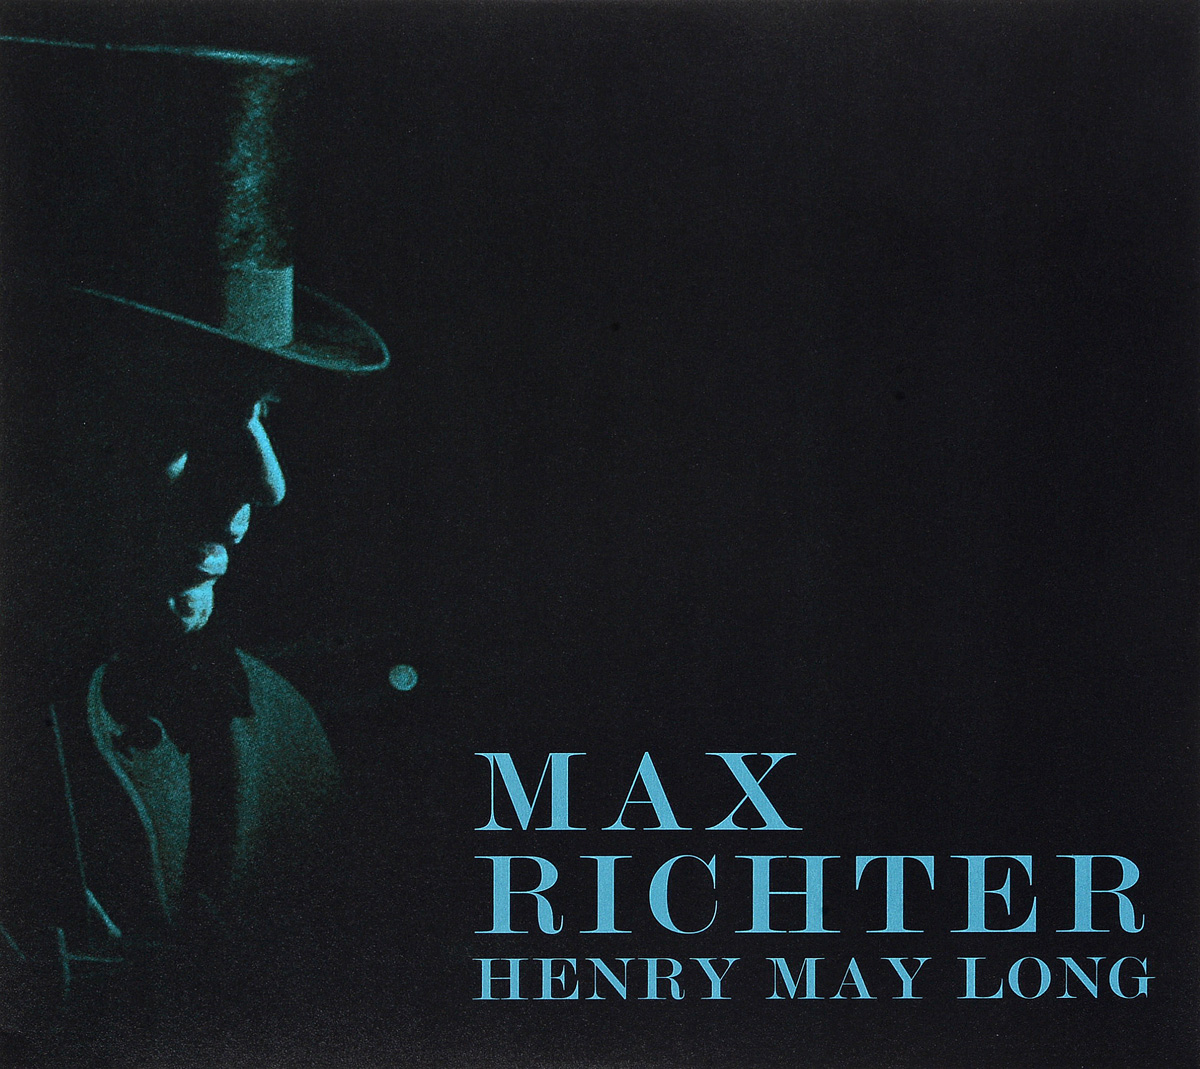 Макс Рихтер Max Richter. Henry May Long (LP) max richter max richter from sleep 2 lp 180 gr transparent